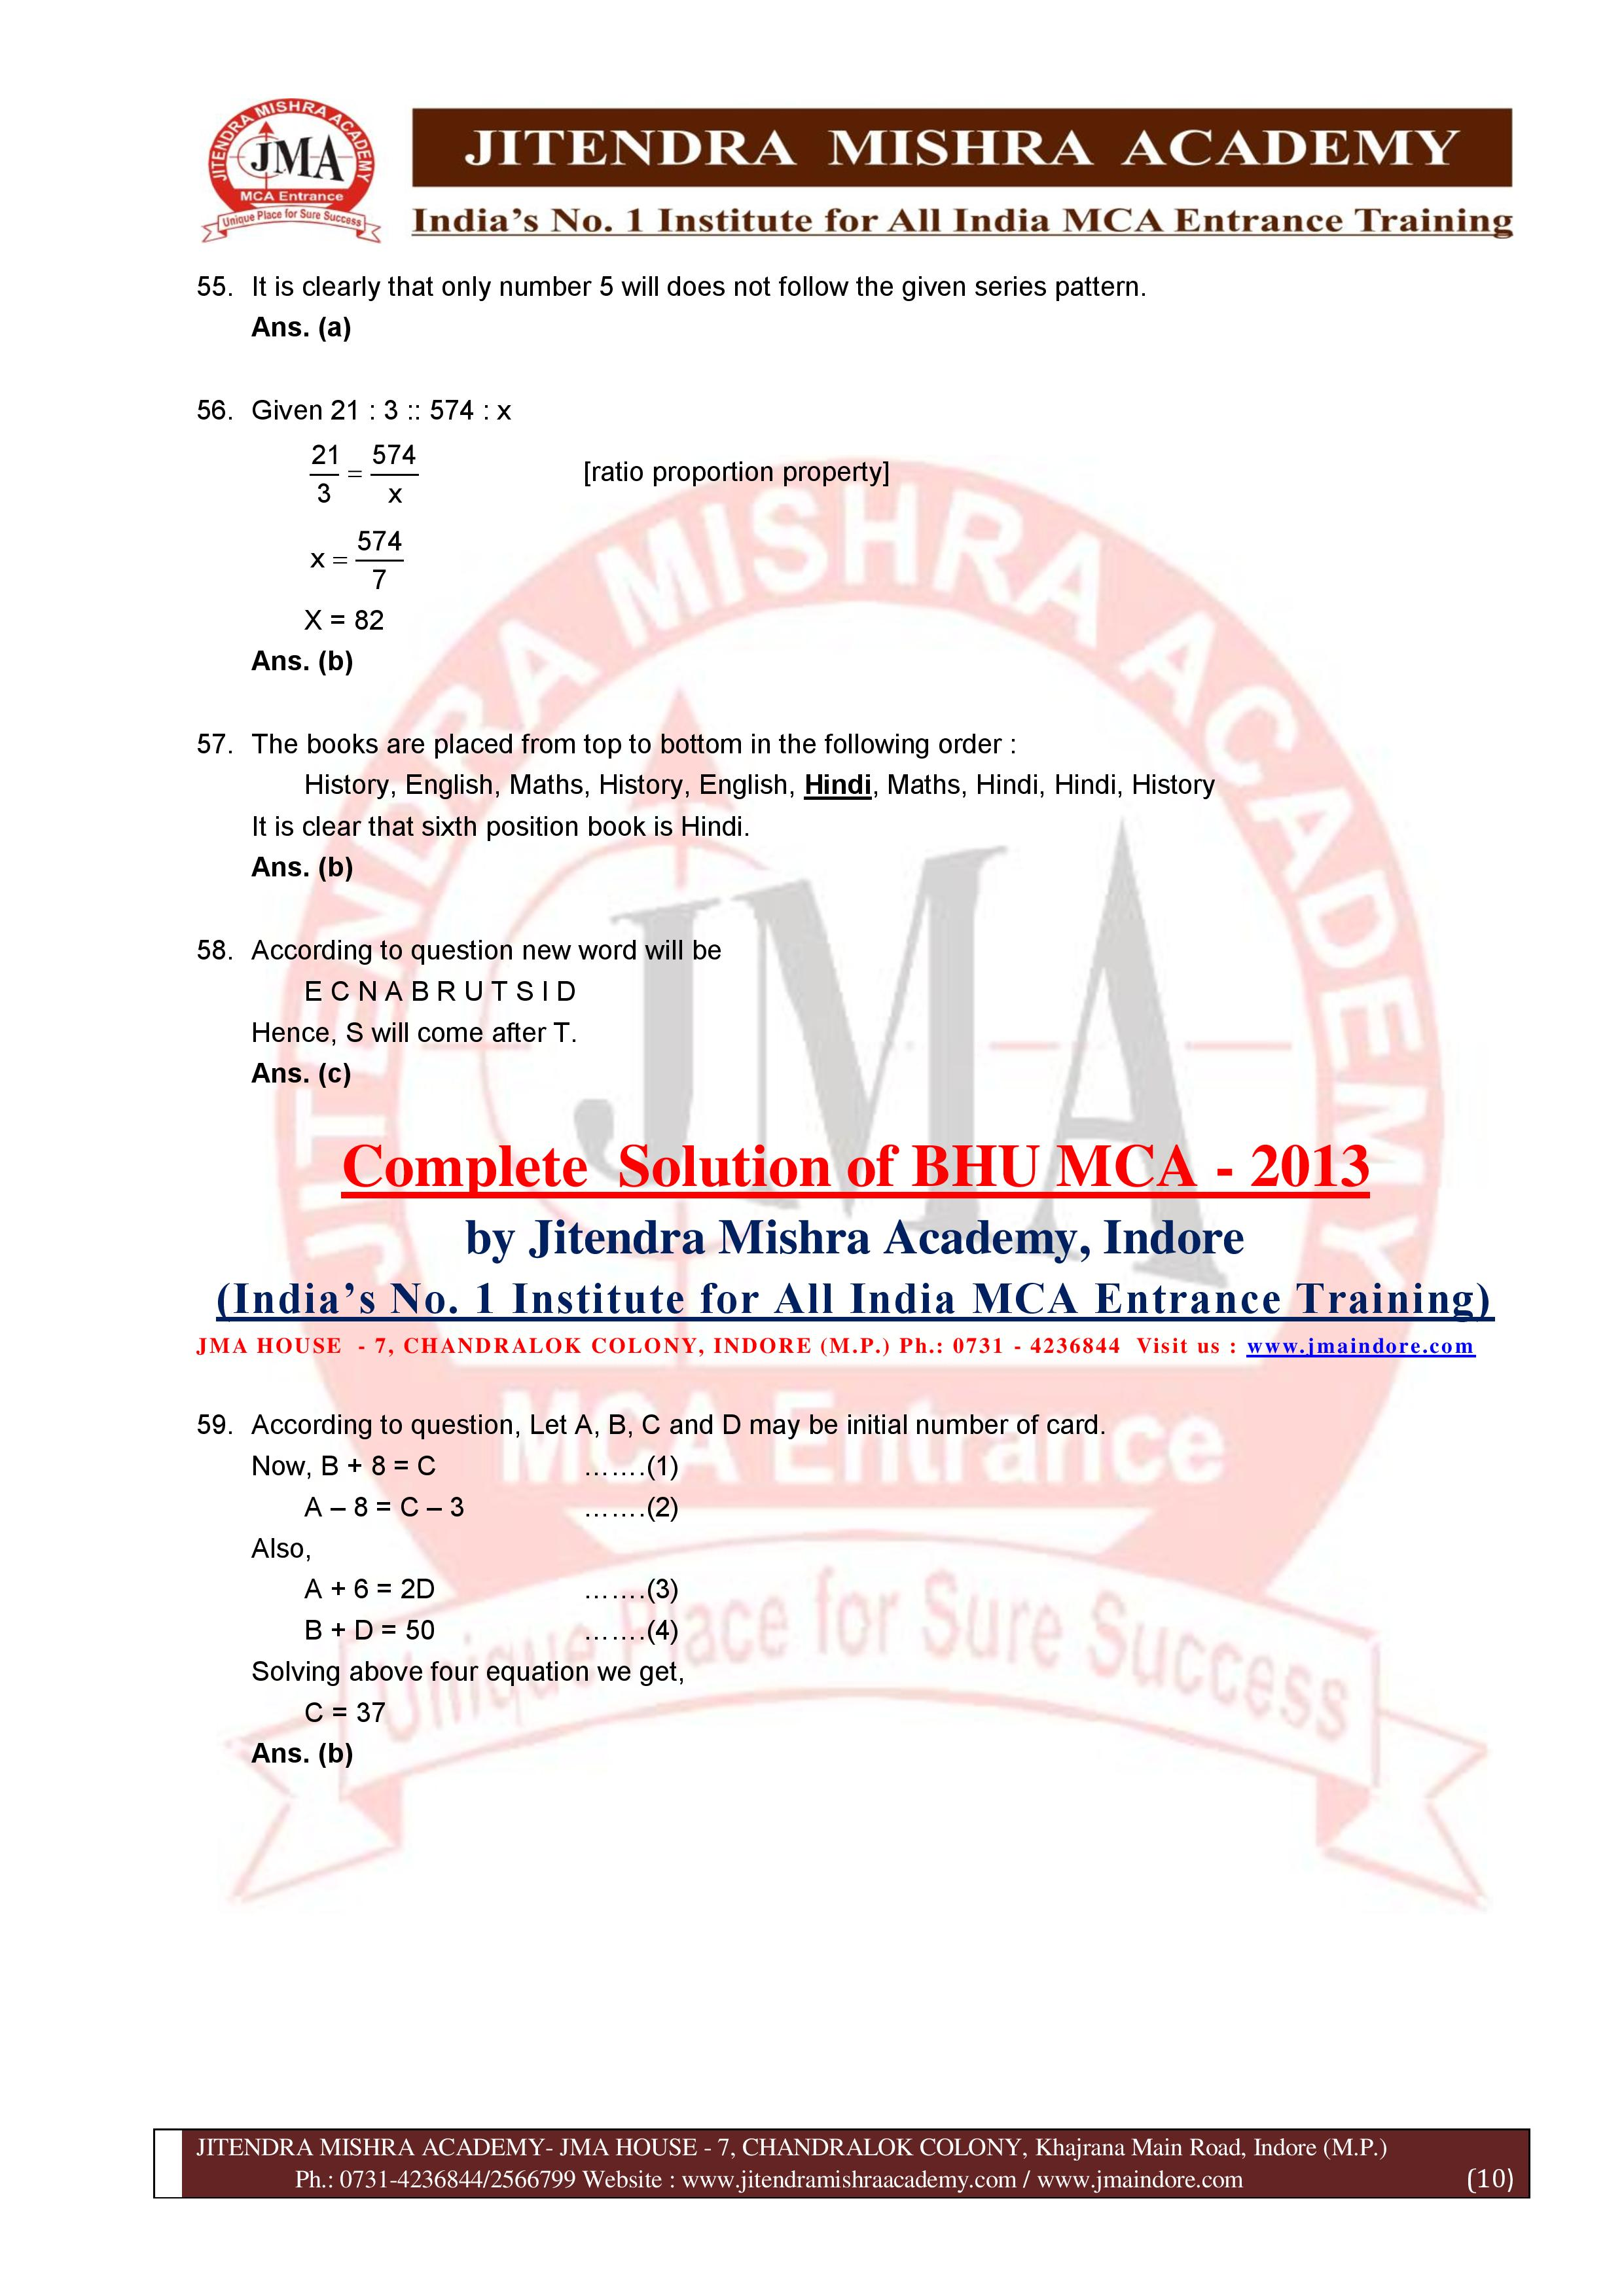 BHU 2013 SOLUTION (SET - 3) (06.07.16)-page-010